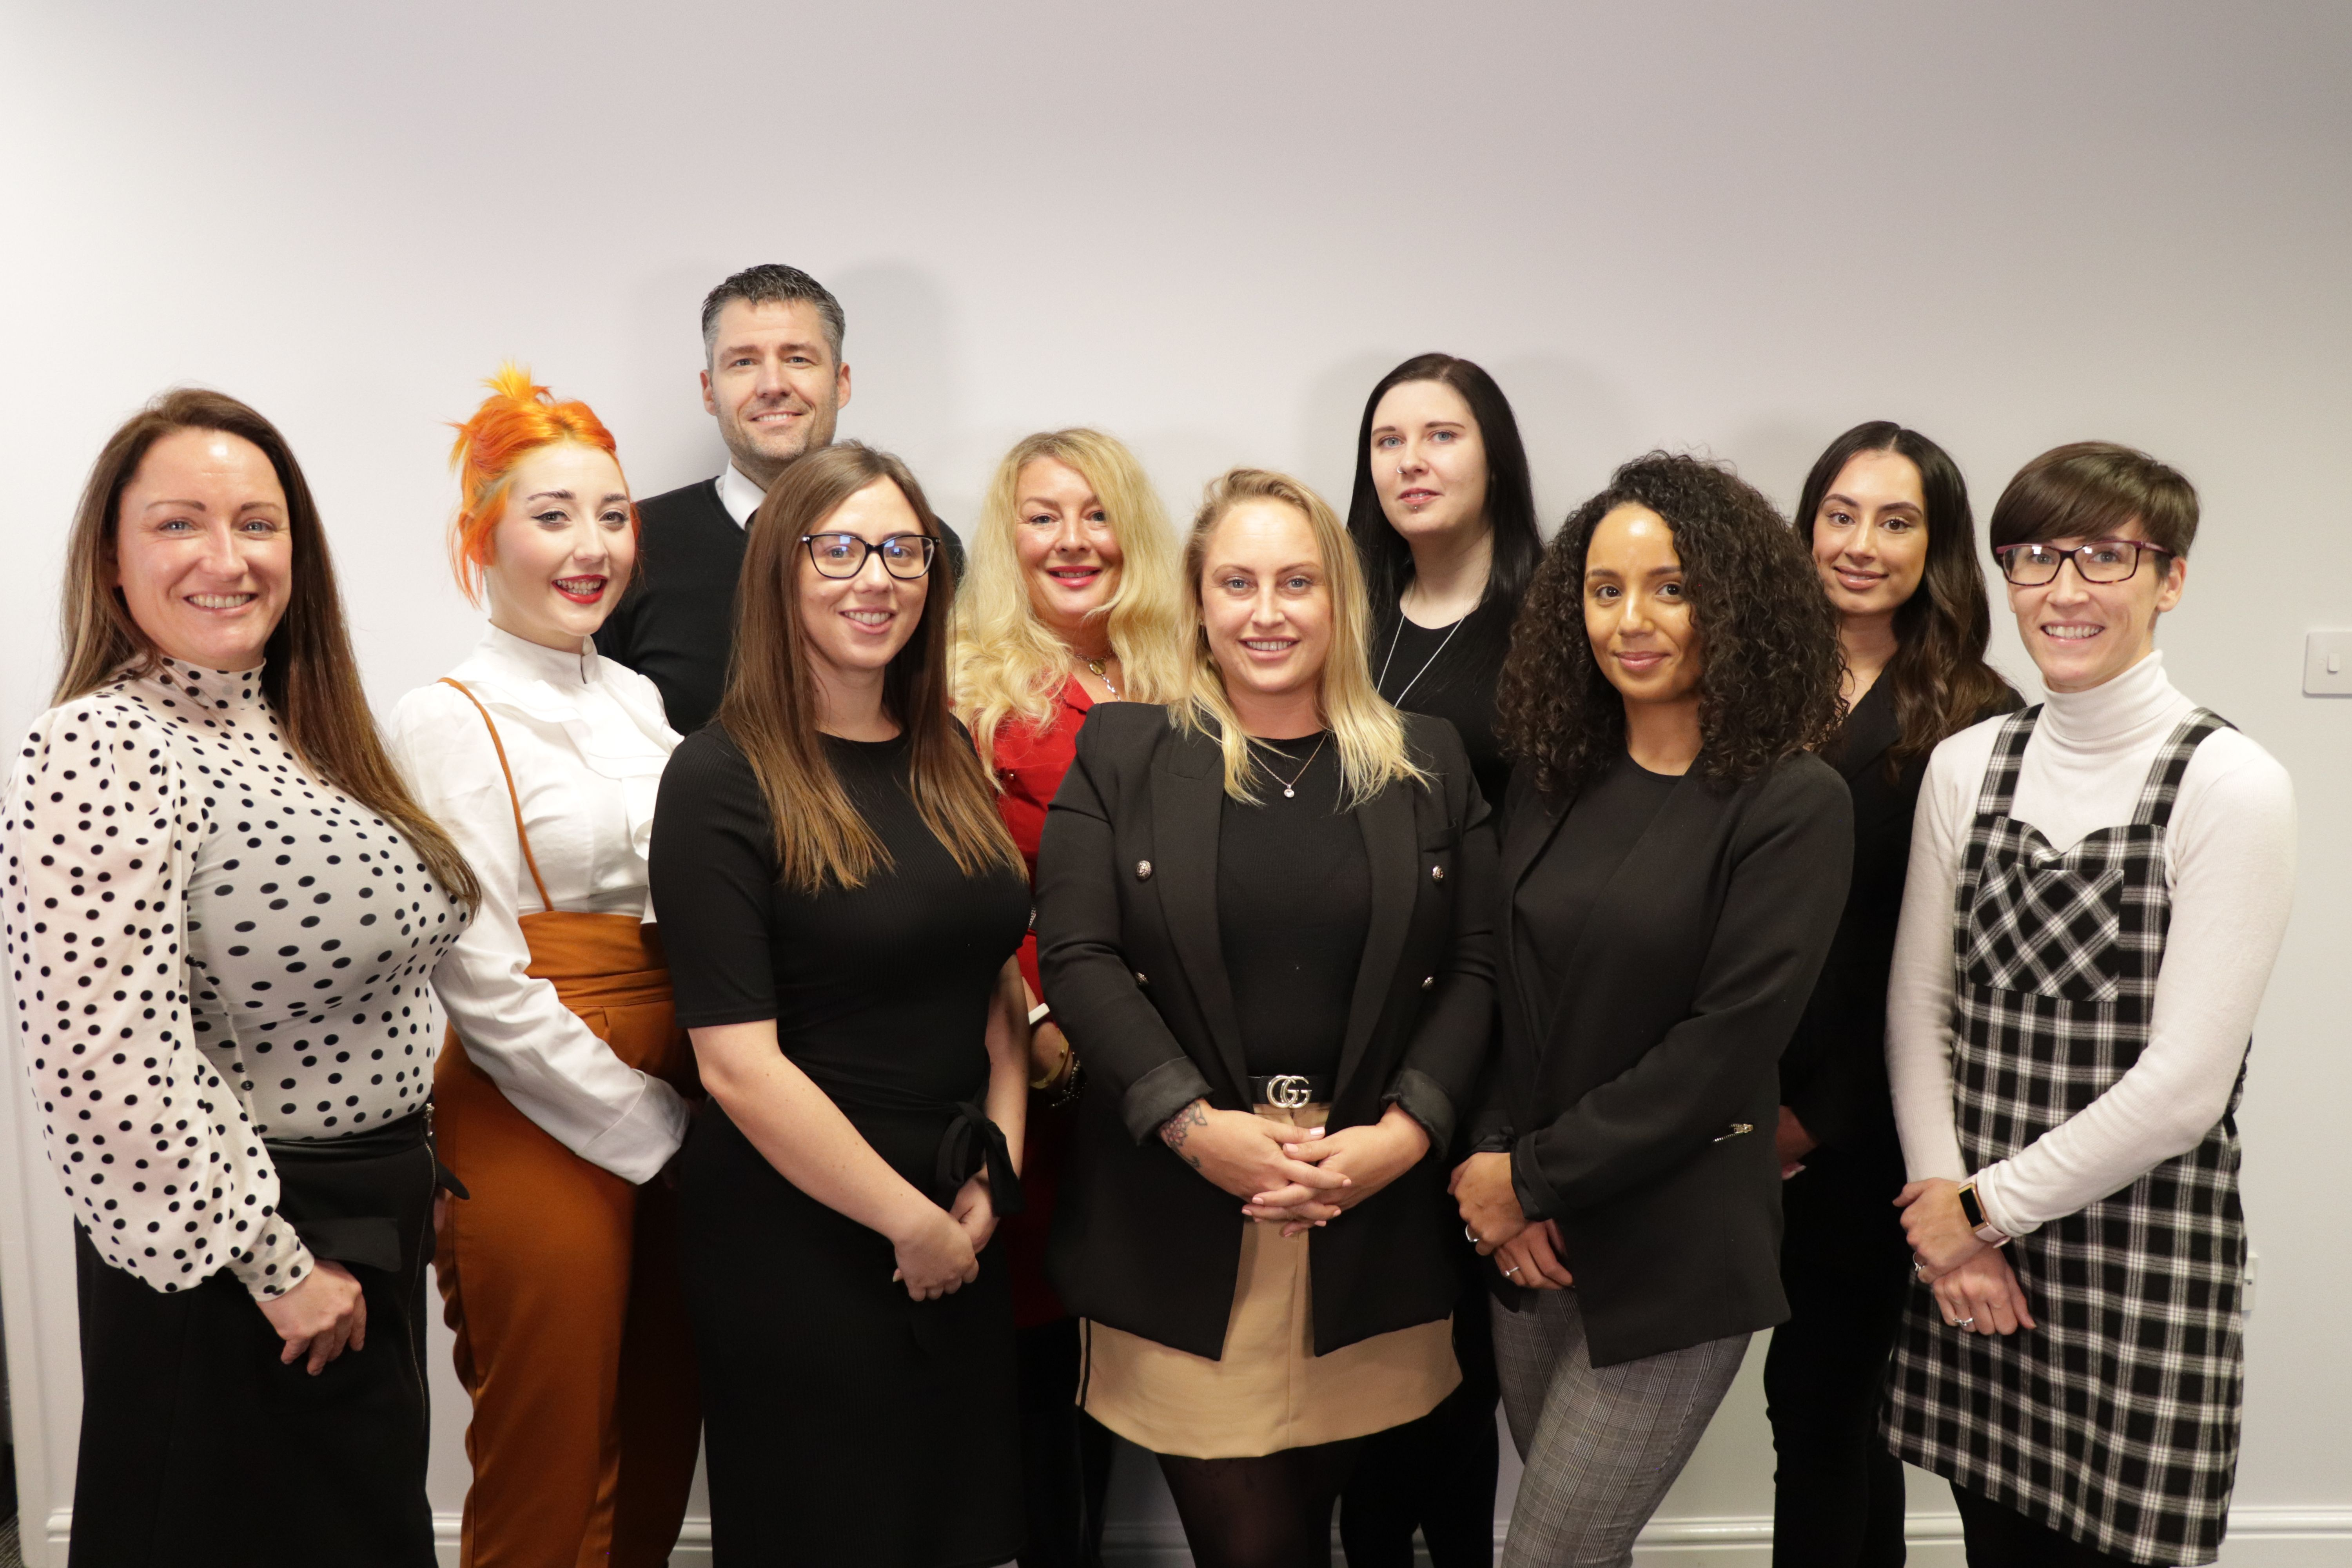 The Tenancy Management Team